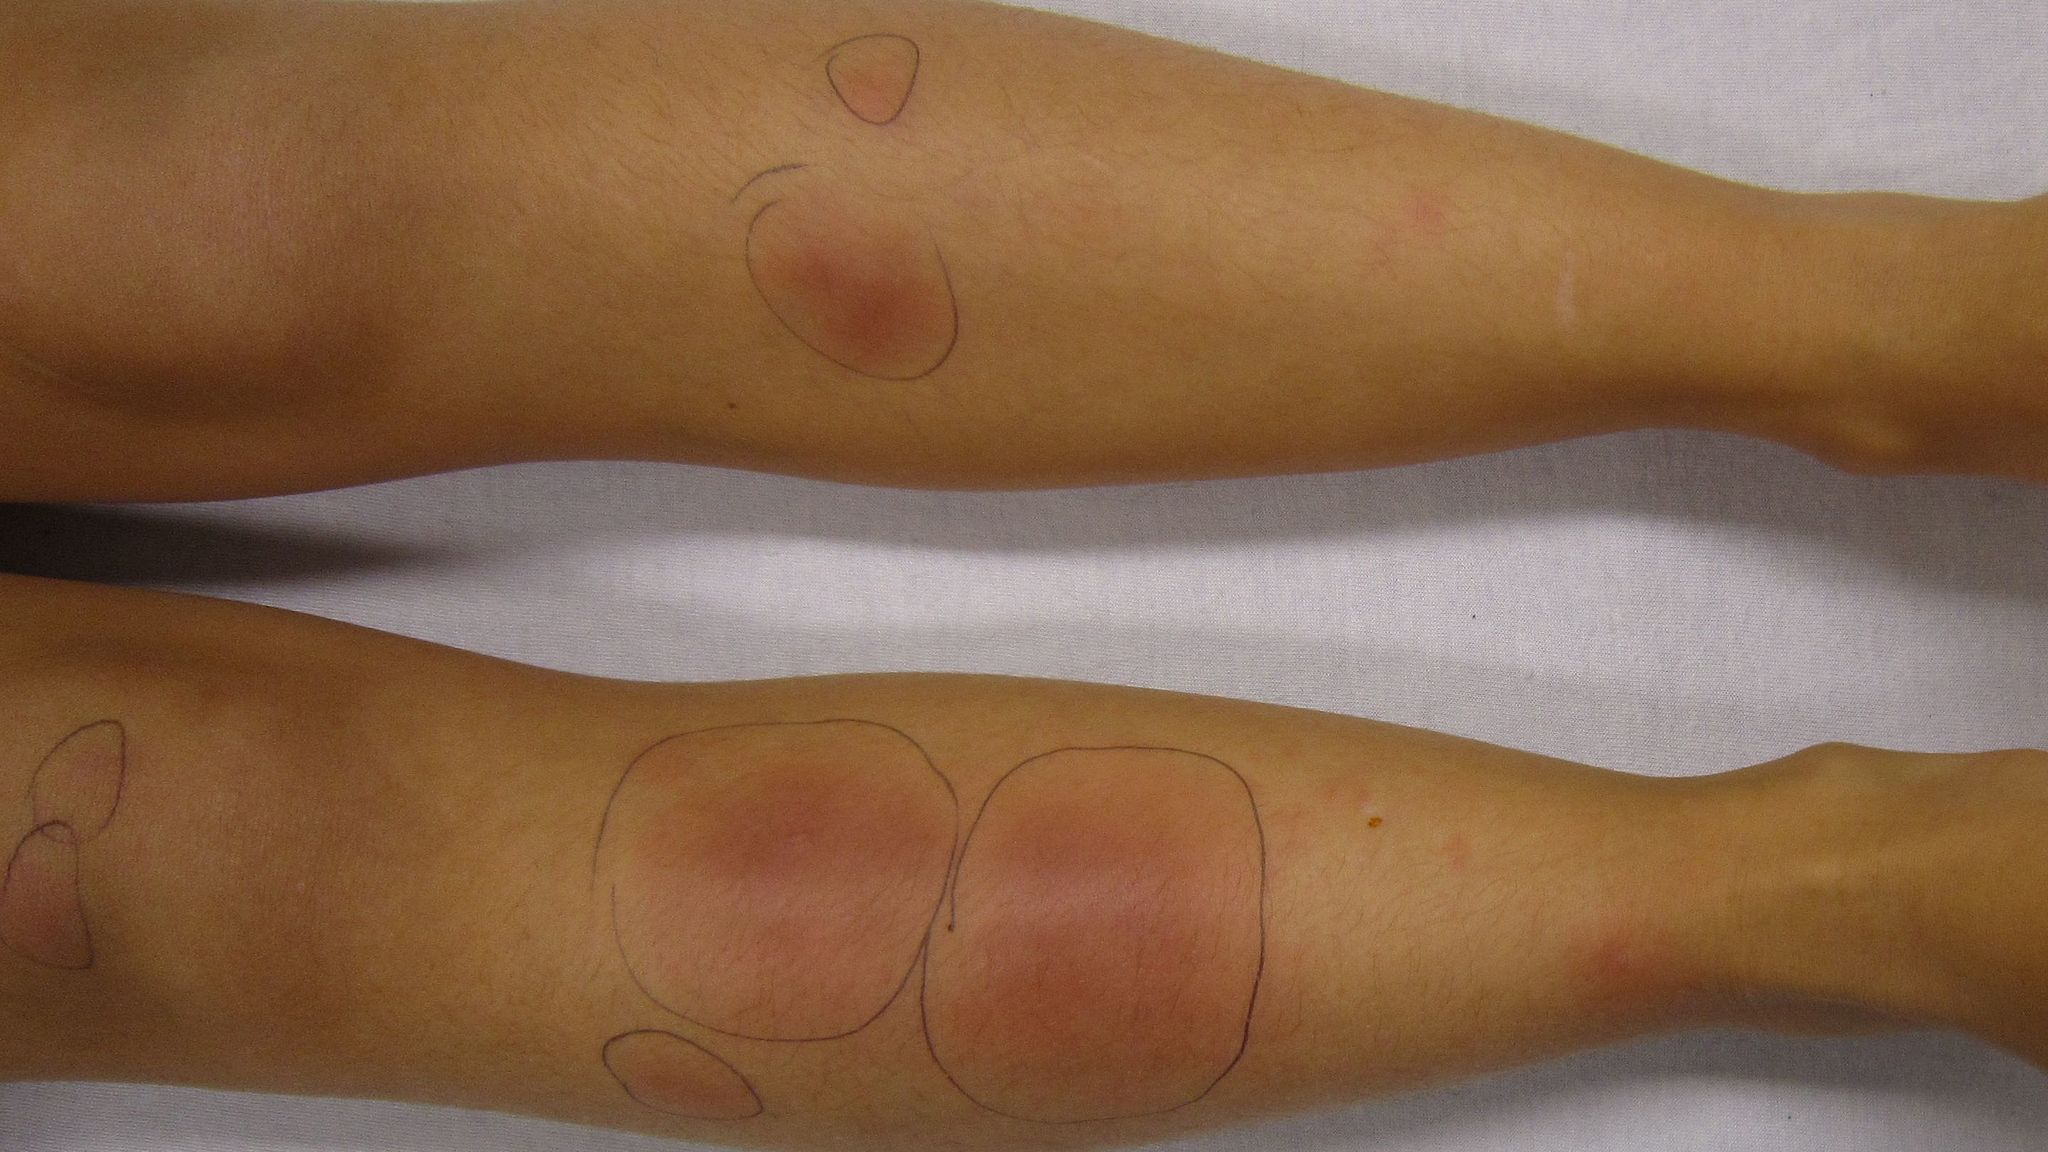 Panniculitis Causes, Symptoms, and Treatments